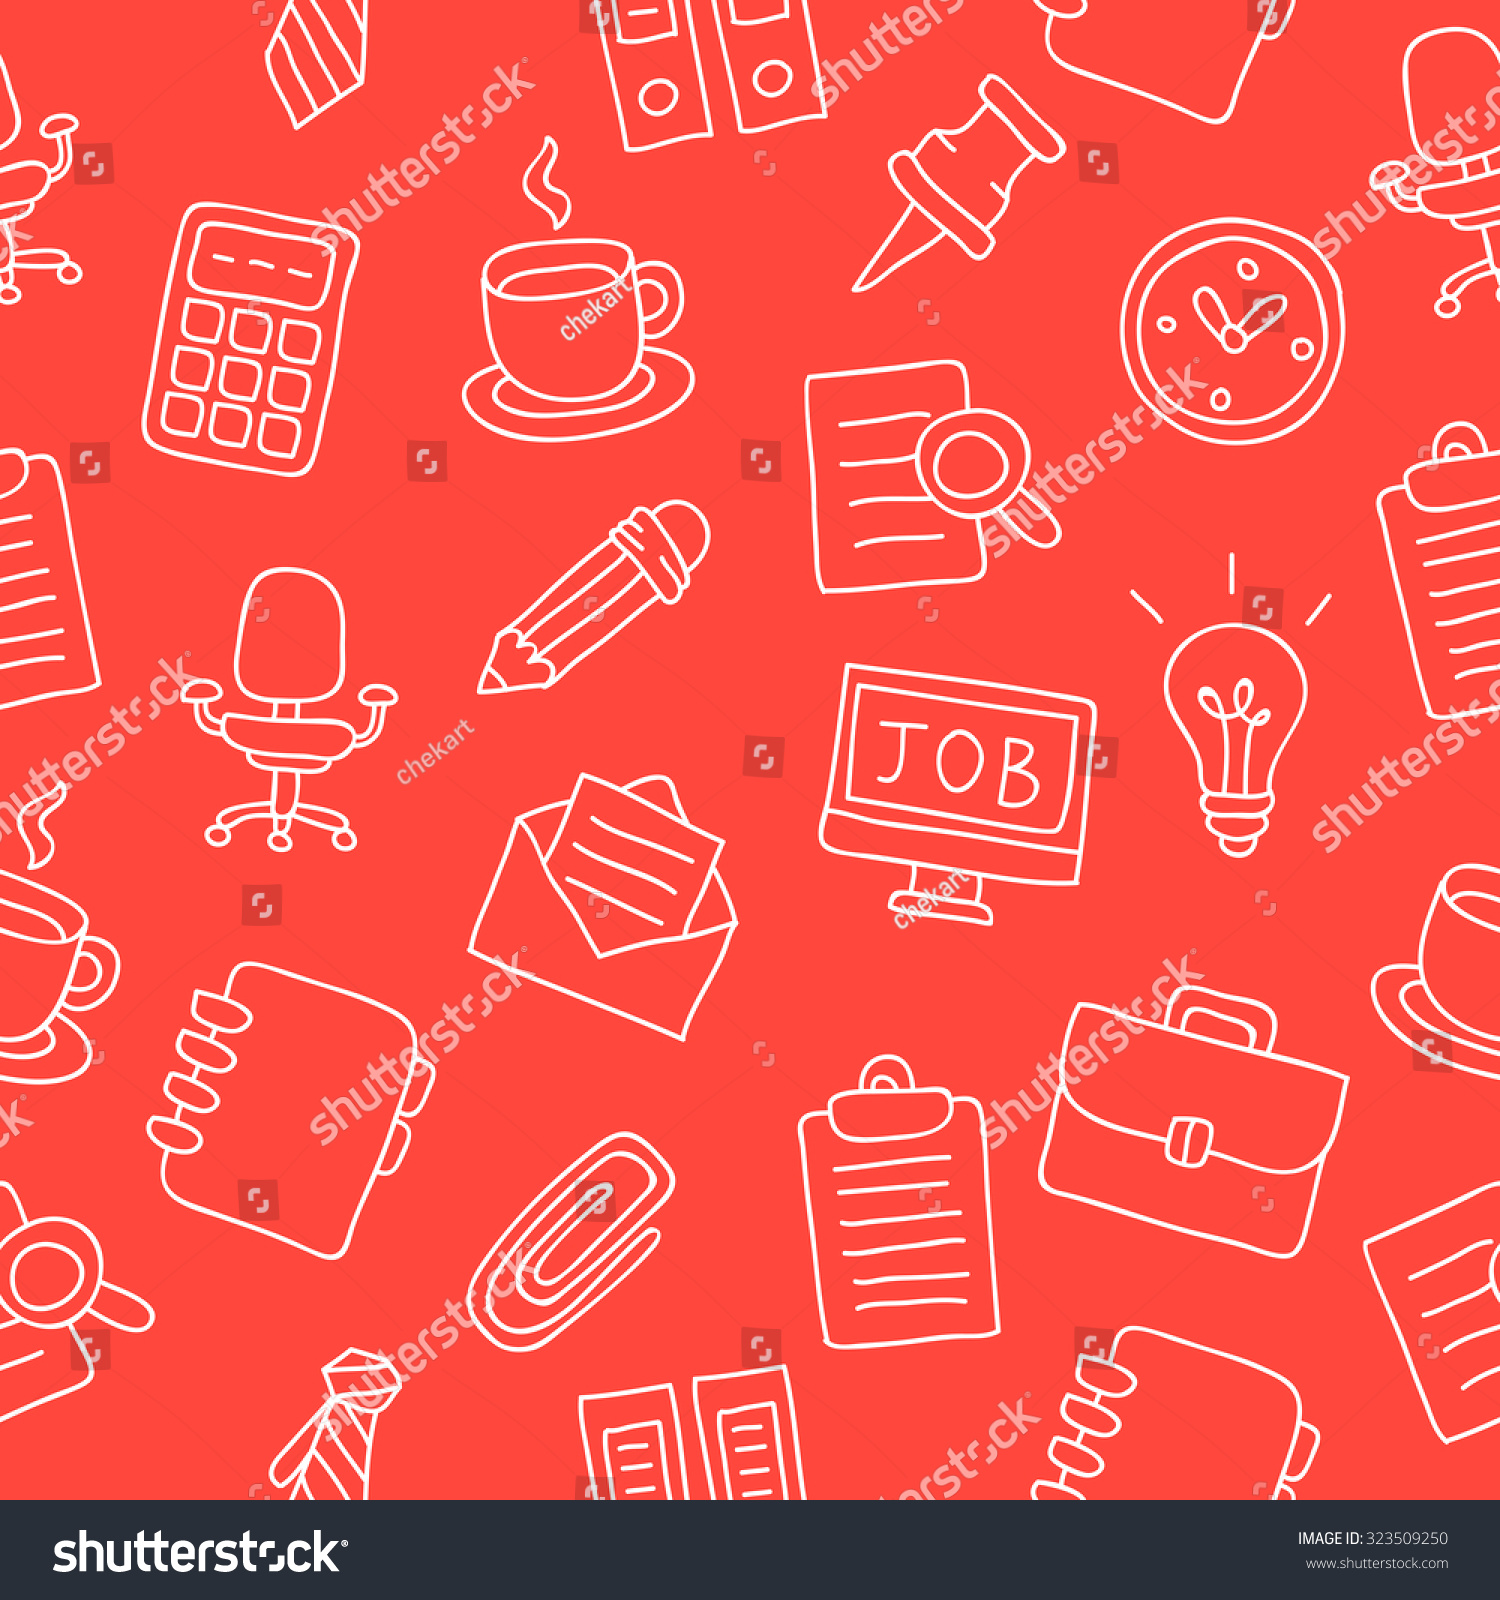 Seamless vector pattern of office icons on a red background, hand-drawn.